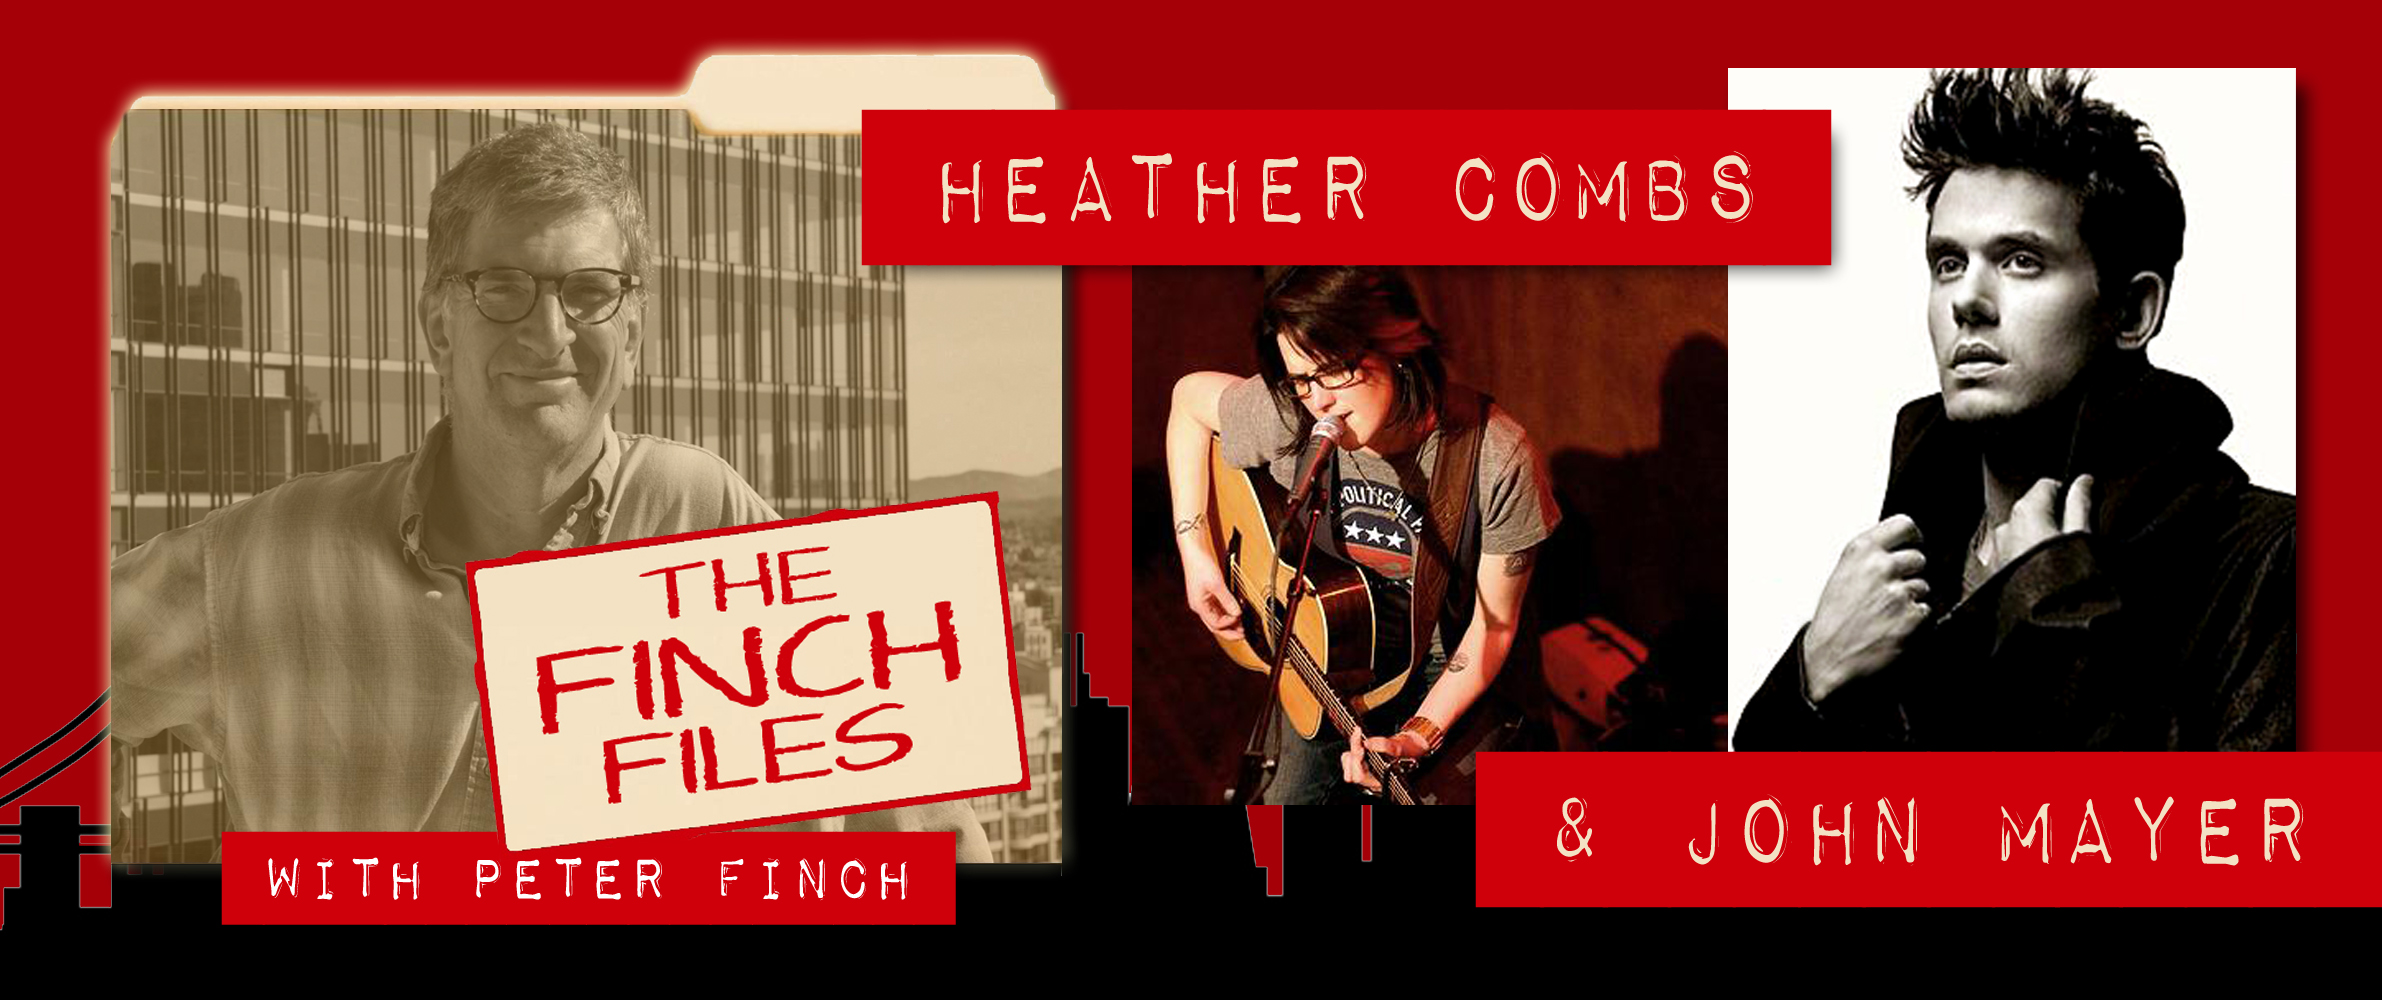 The Finch Files: Heather Combs (…and John Mayer)